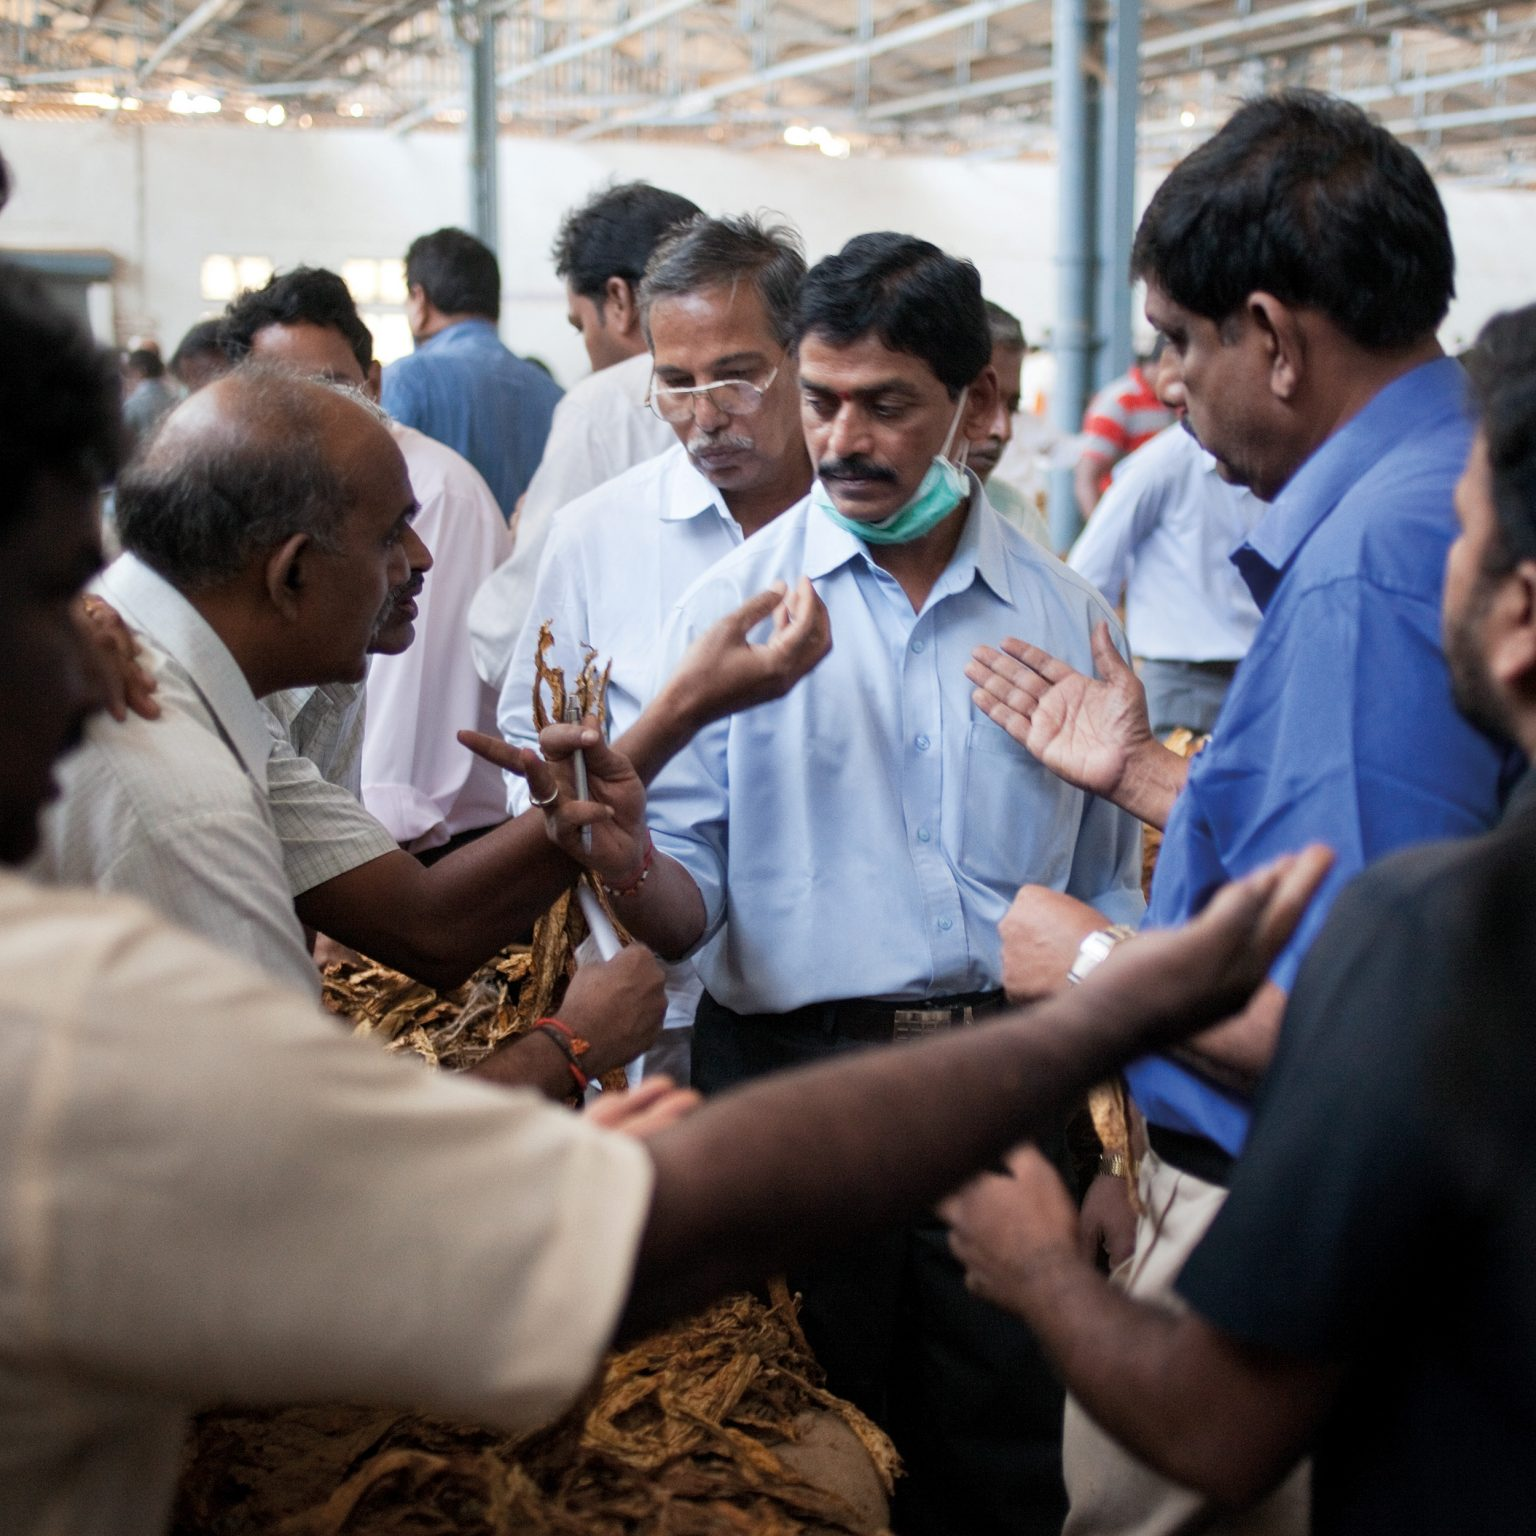 Periyapatna, India. P. Jayarama (centre), auction superintendent of the Tobacco Board auction floor, accepts bids for the exhibited tobacco bales. Tobacco prices range between USD 1-3 per kilo.